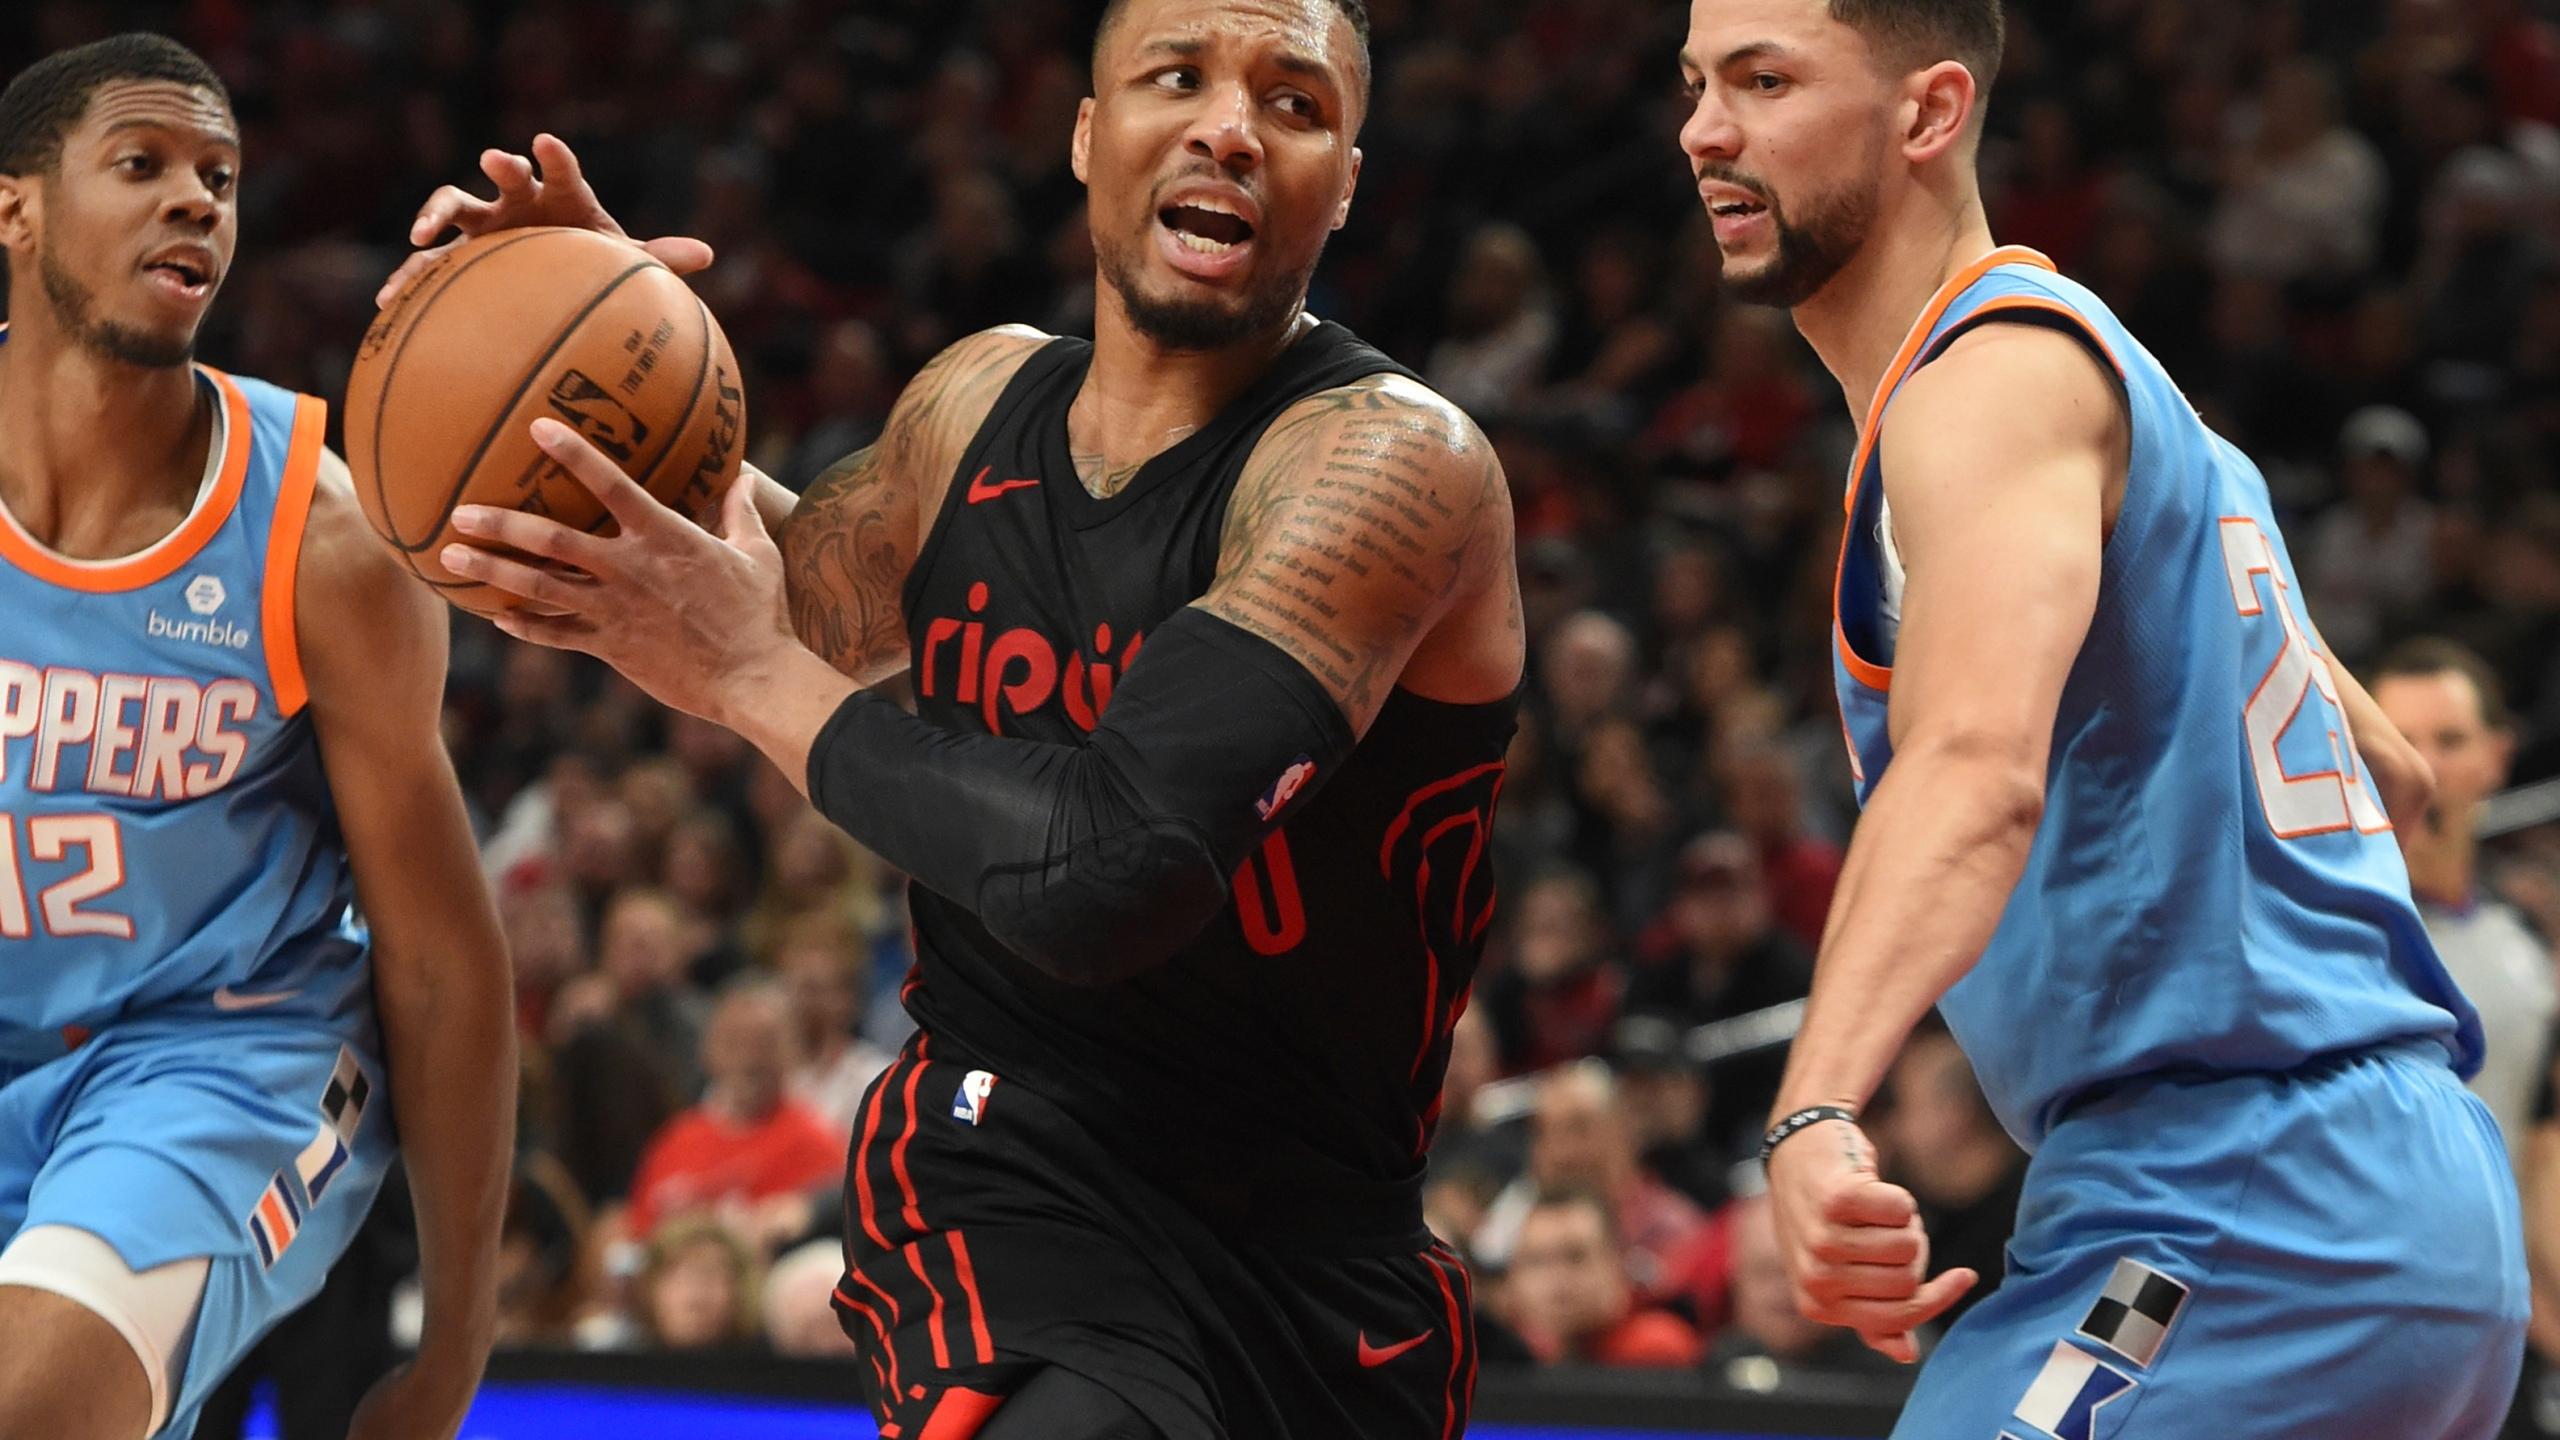 Clippers Trail Blazers Basketball_1522473660766